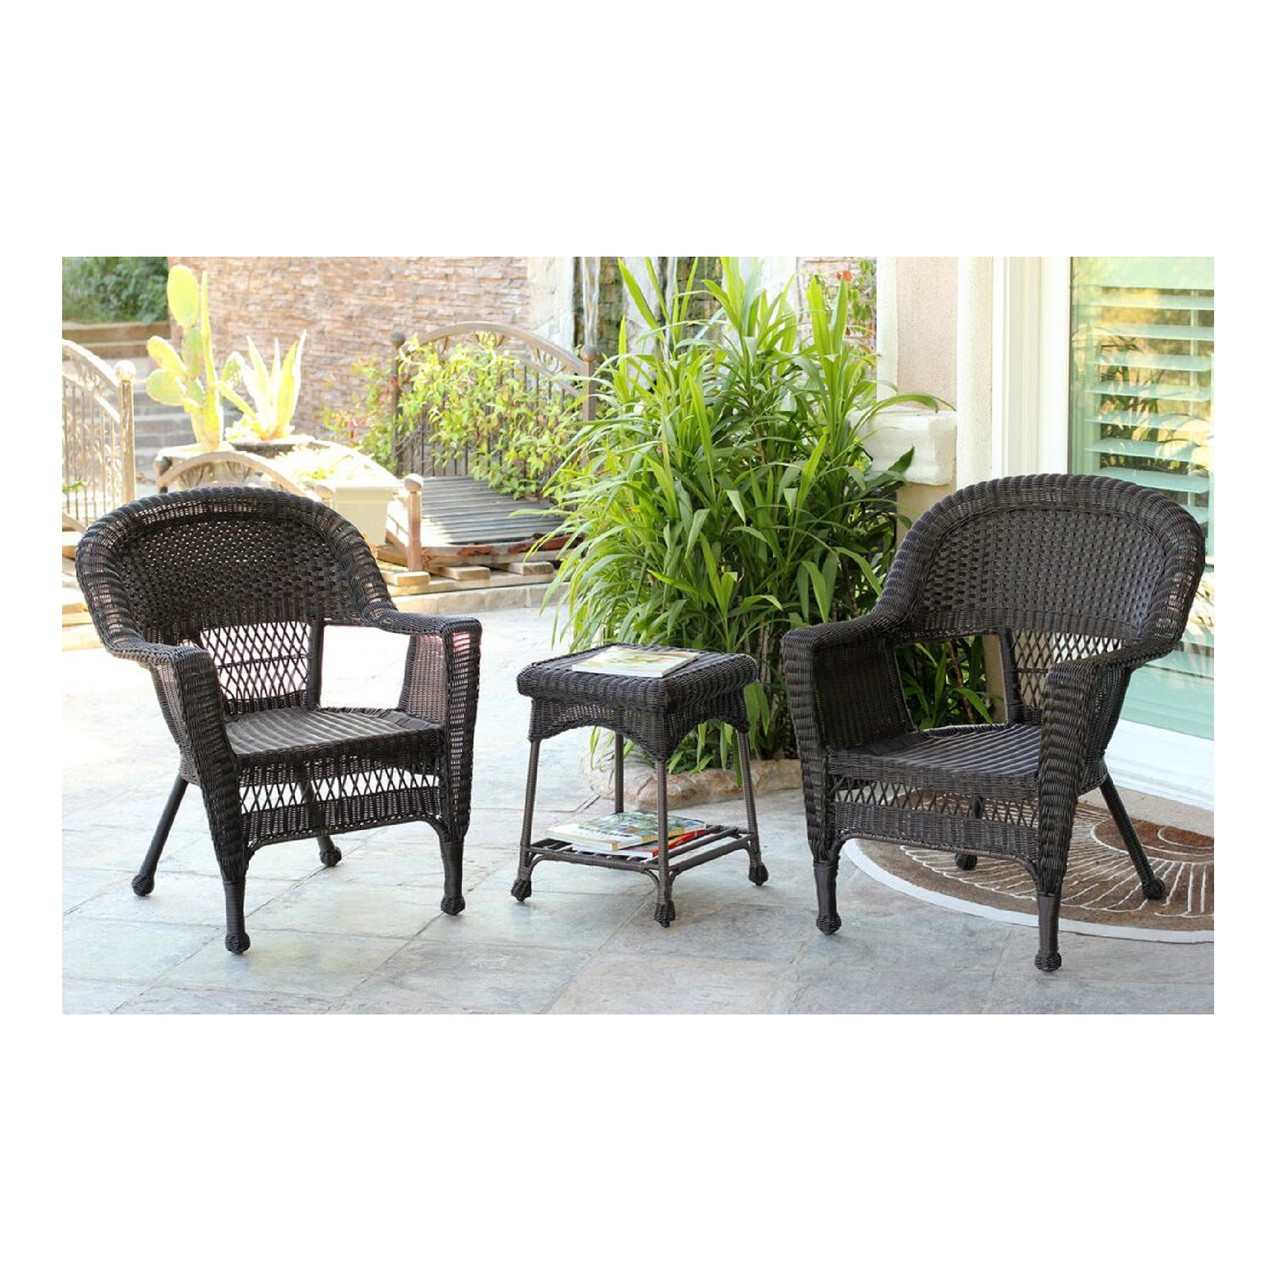 Resin Garden Table And Chair Sets: 3-Piece Espresso Brown Resin Wicker Patio Chairs & End